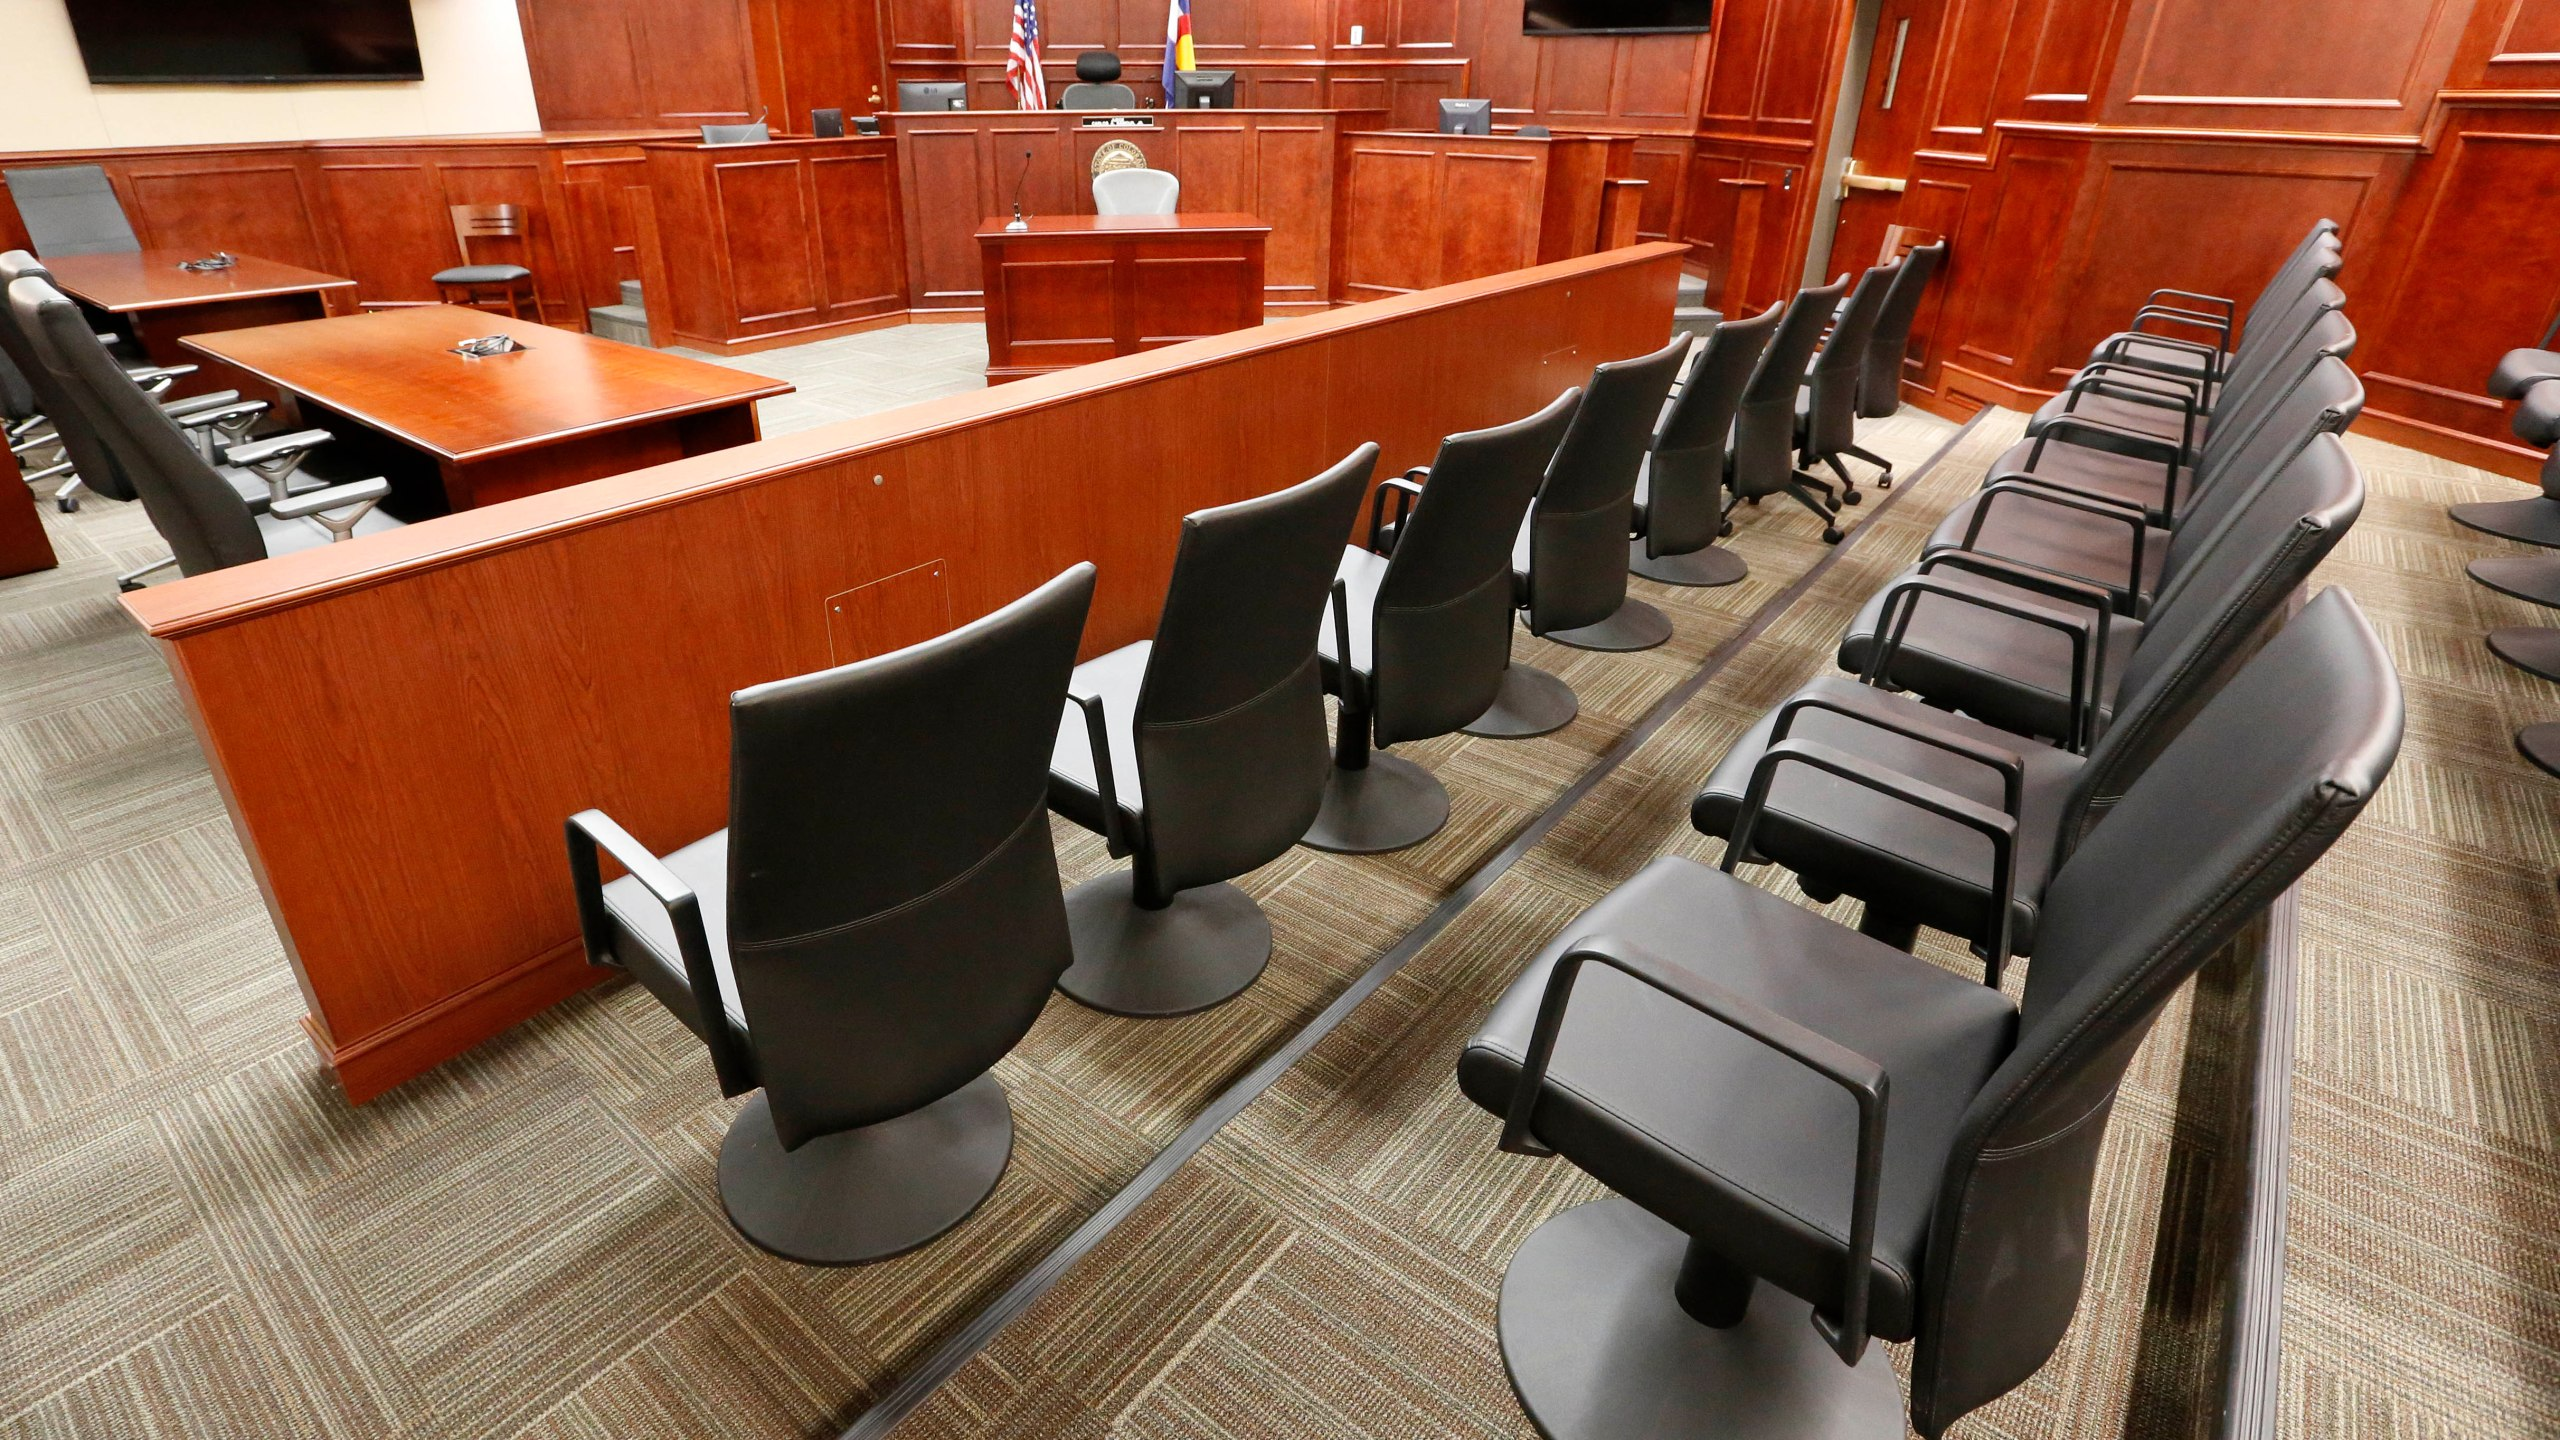 A view of the jury box, right, inside Courtroom 201, where jury selection in the trial of Aurora movie theater shootings defendant James Holmes is to begin on Jan. 20, 2015, at the Arapahoe County District Court in Centennial, Colo., Thursday, Jan. 15, 2015.